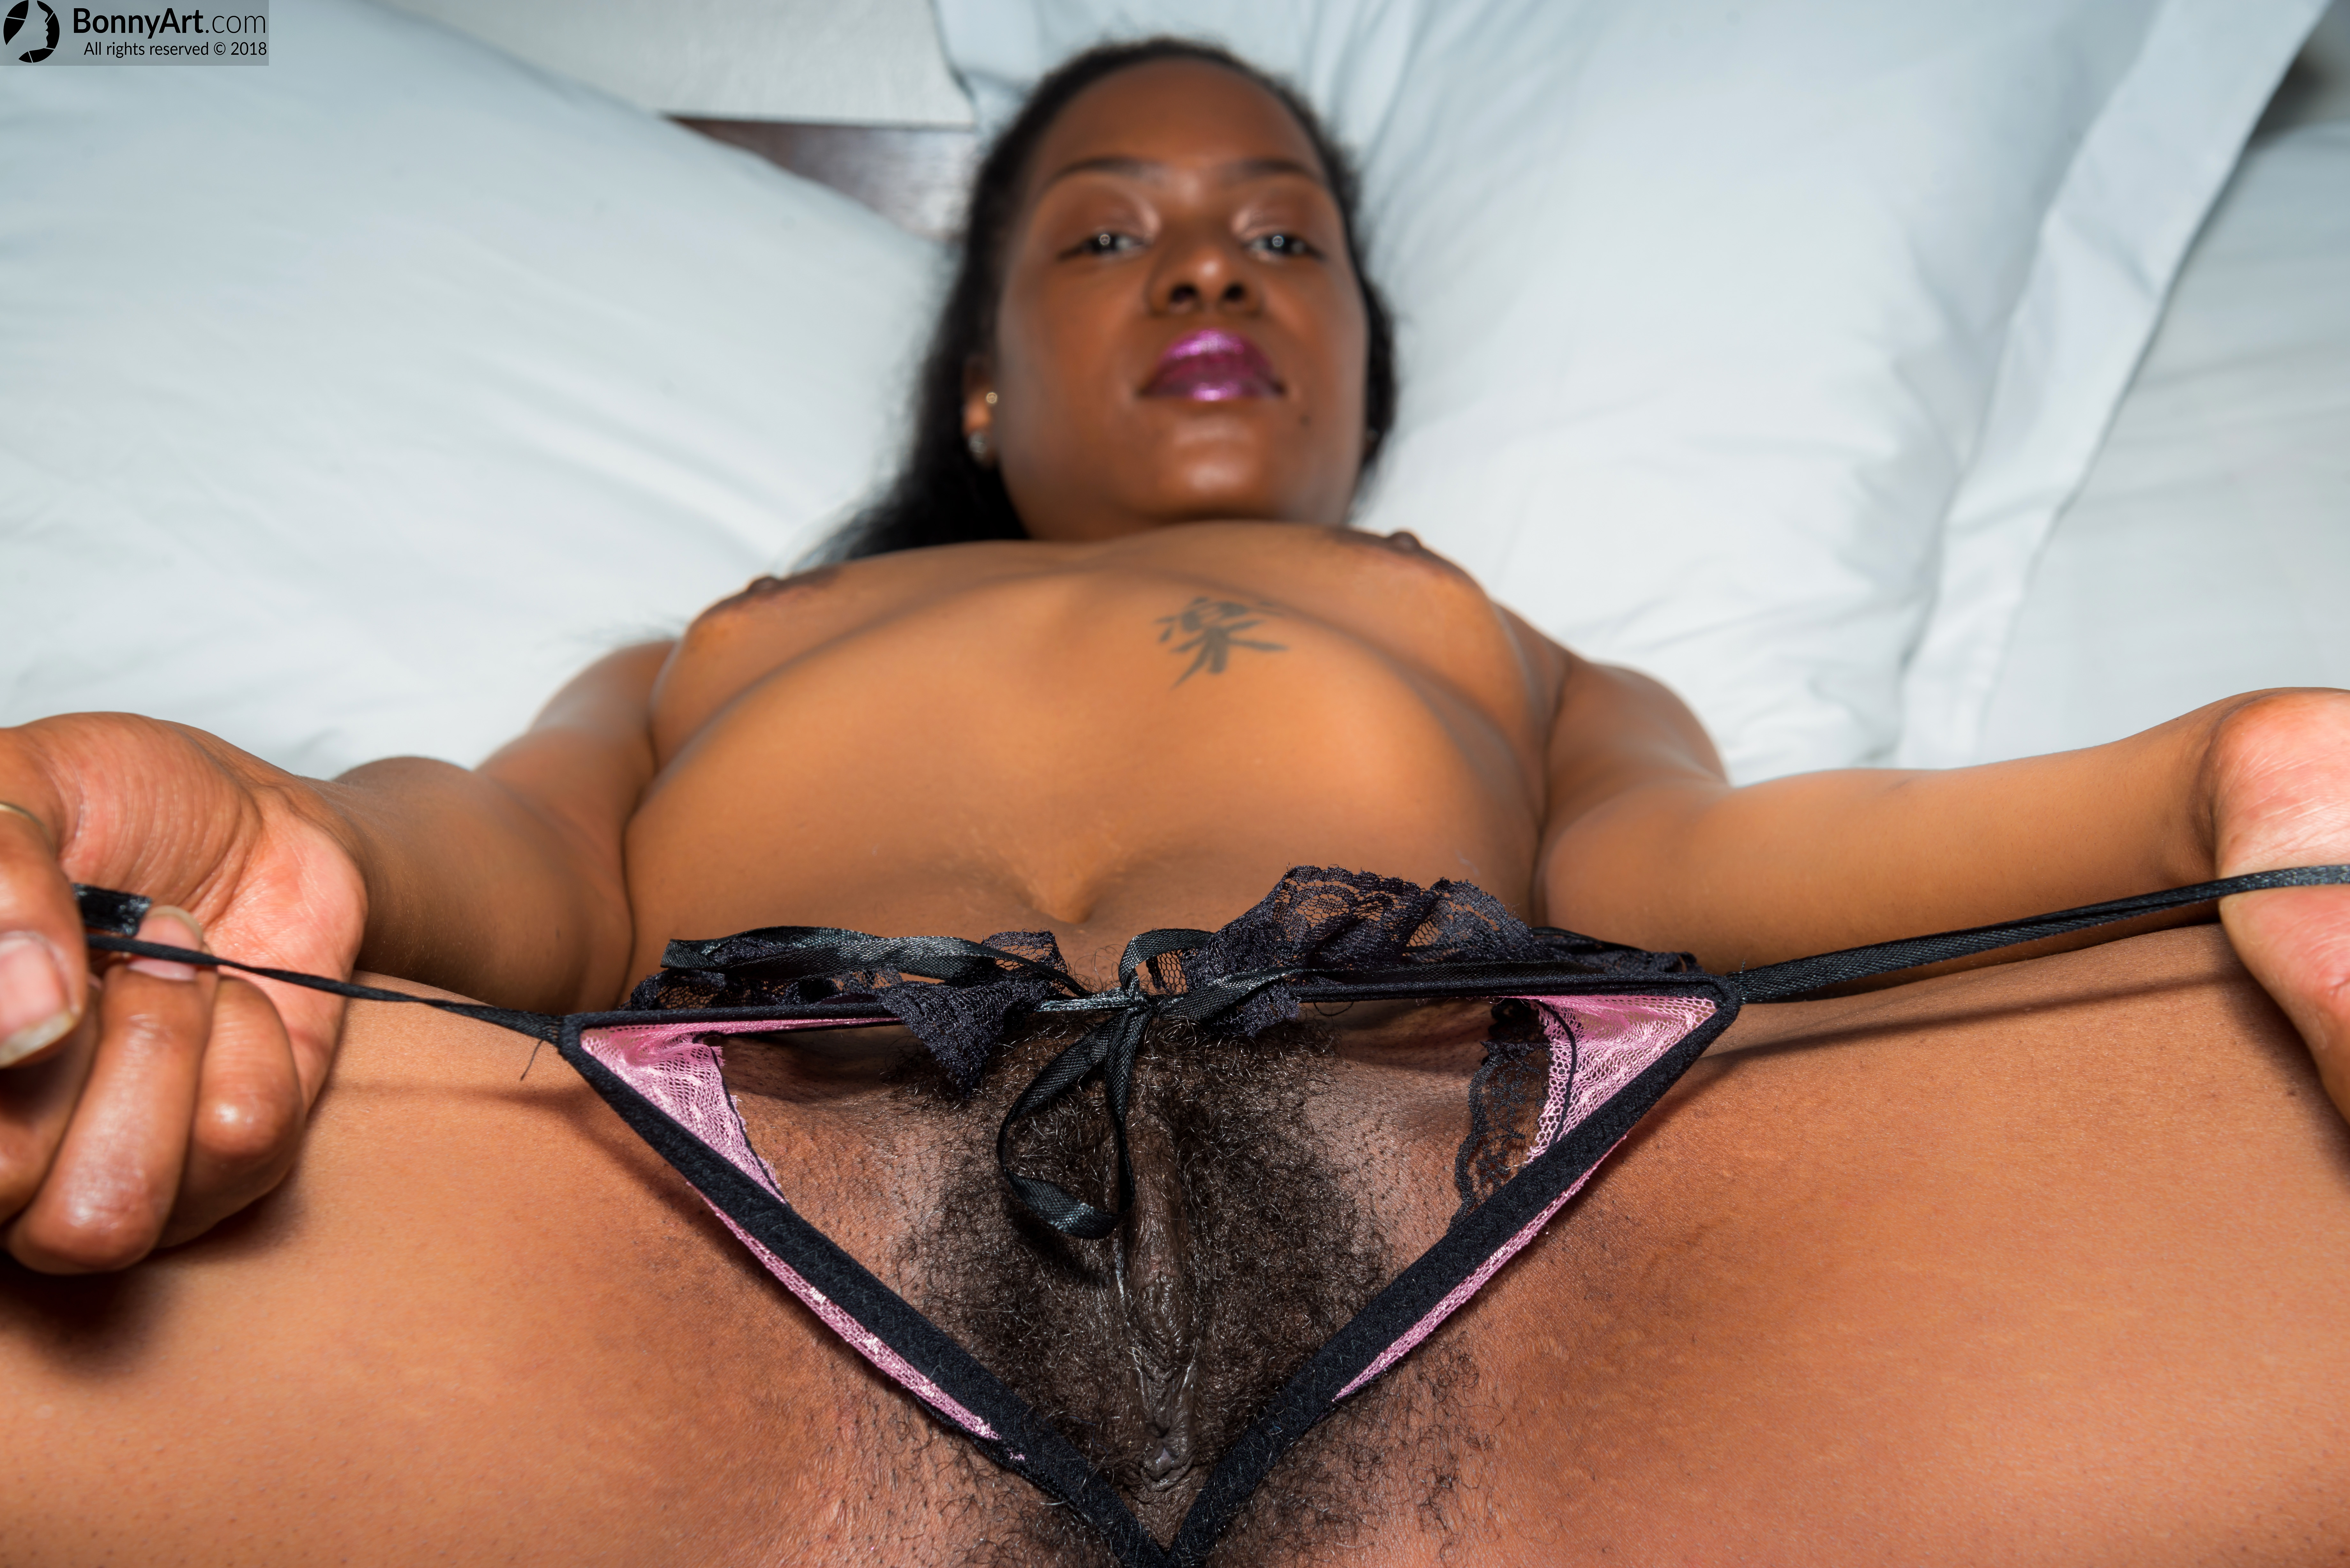 Showing her Ebony Unshaven Vulva with Crotchless Panties HD